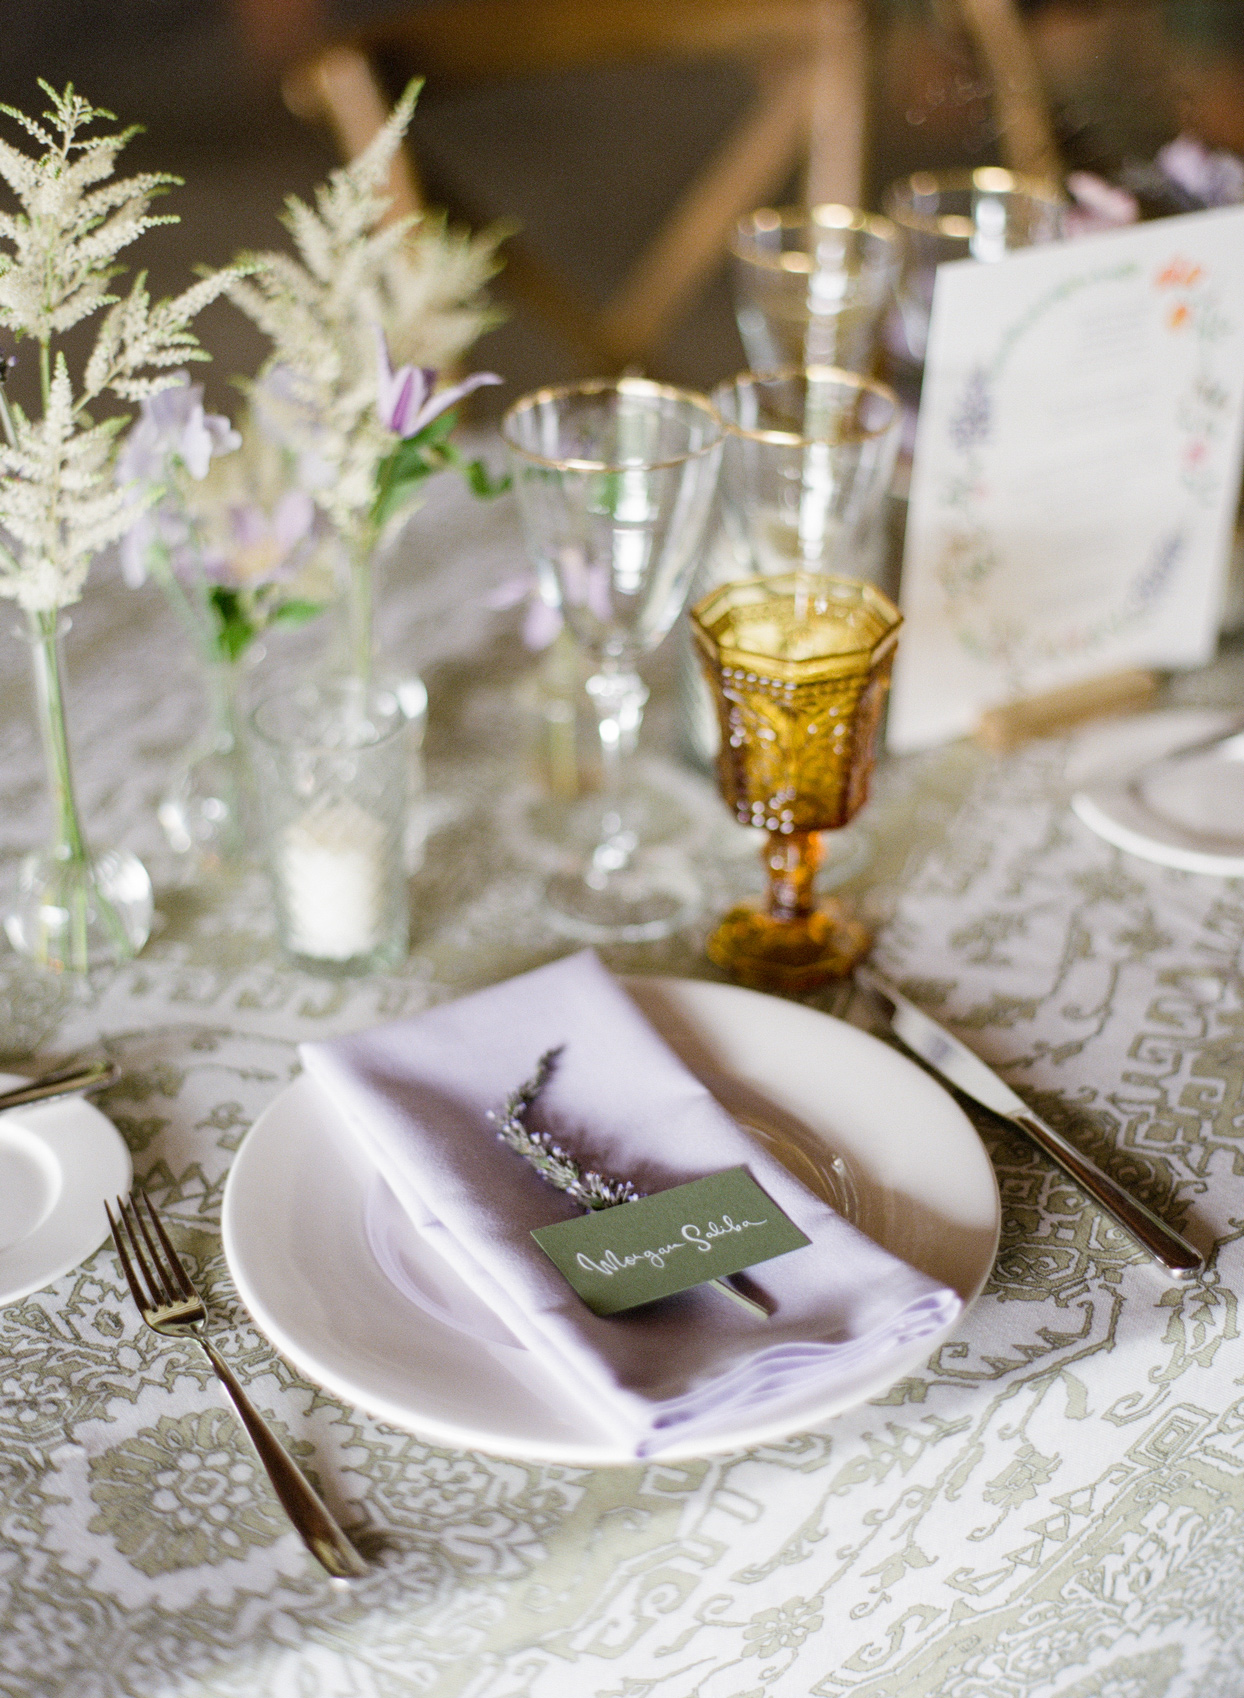 delicate place settings with lavender sprigs